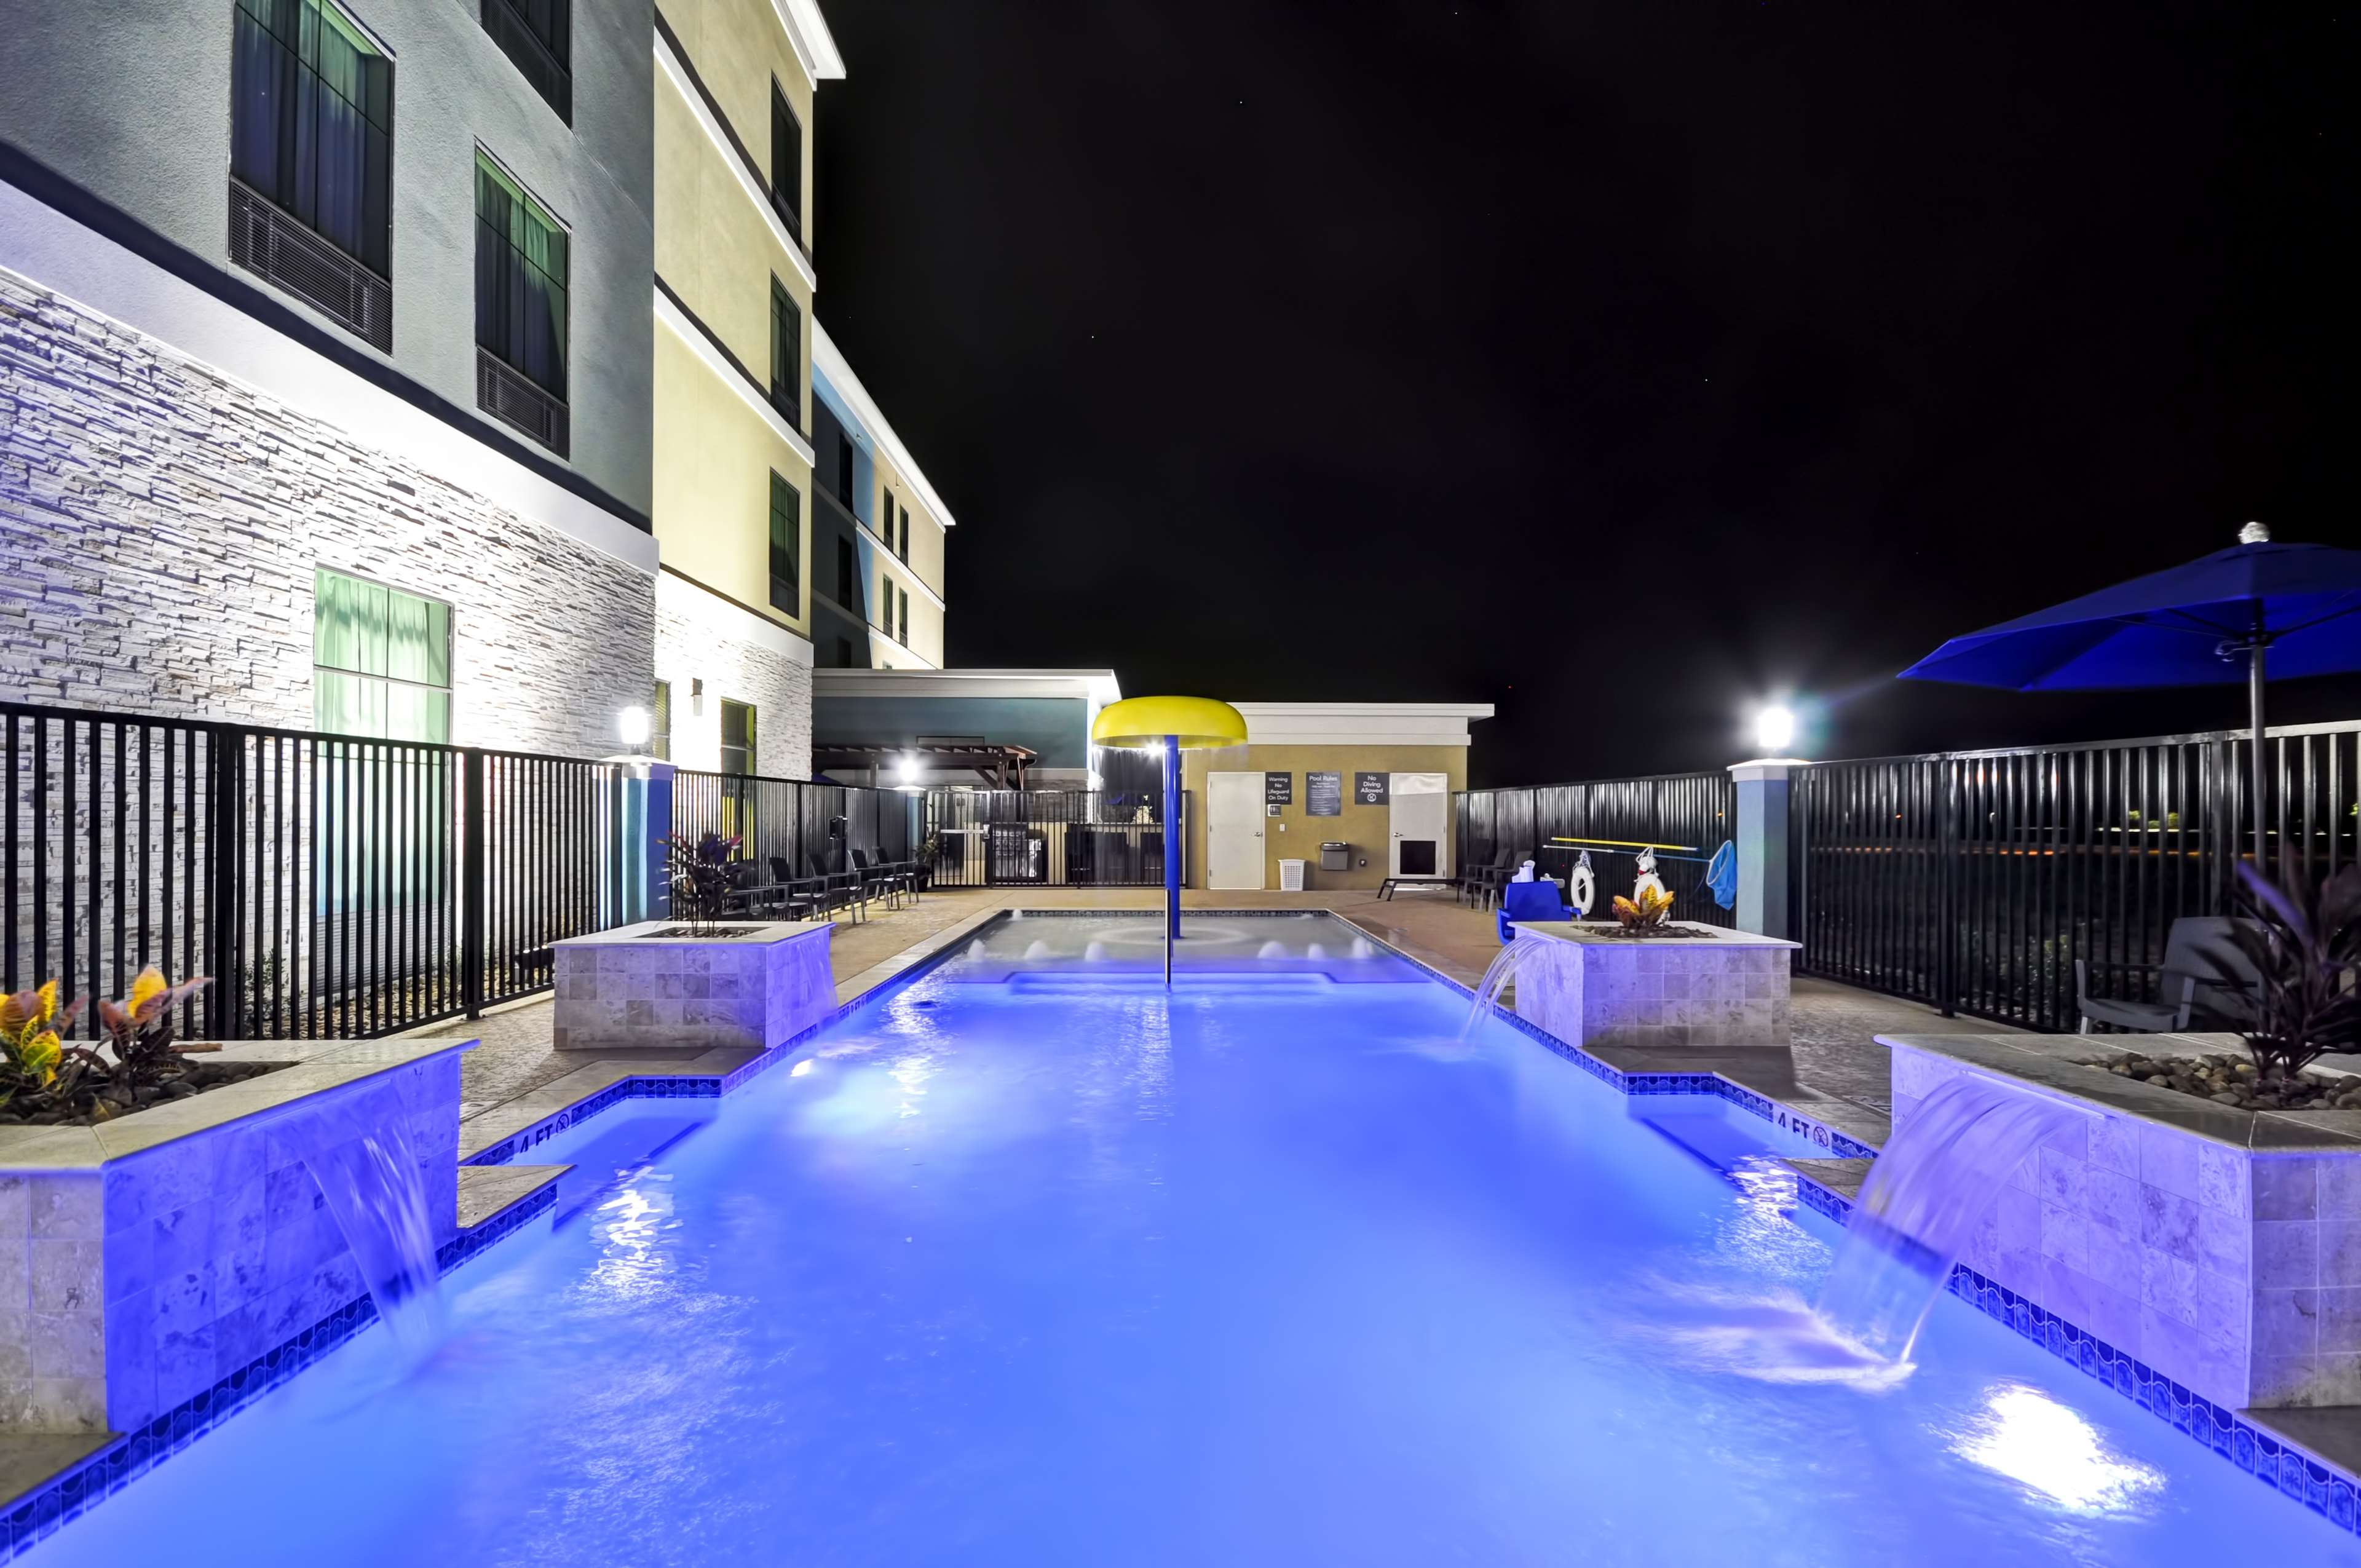 Homewood Suites by Hilton New Braunfels image 17